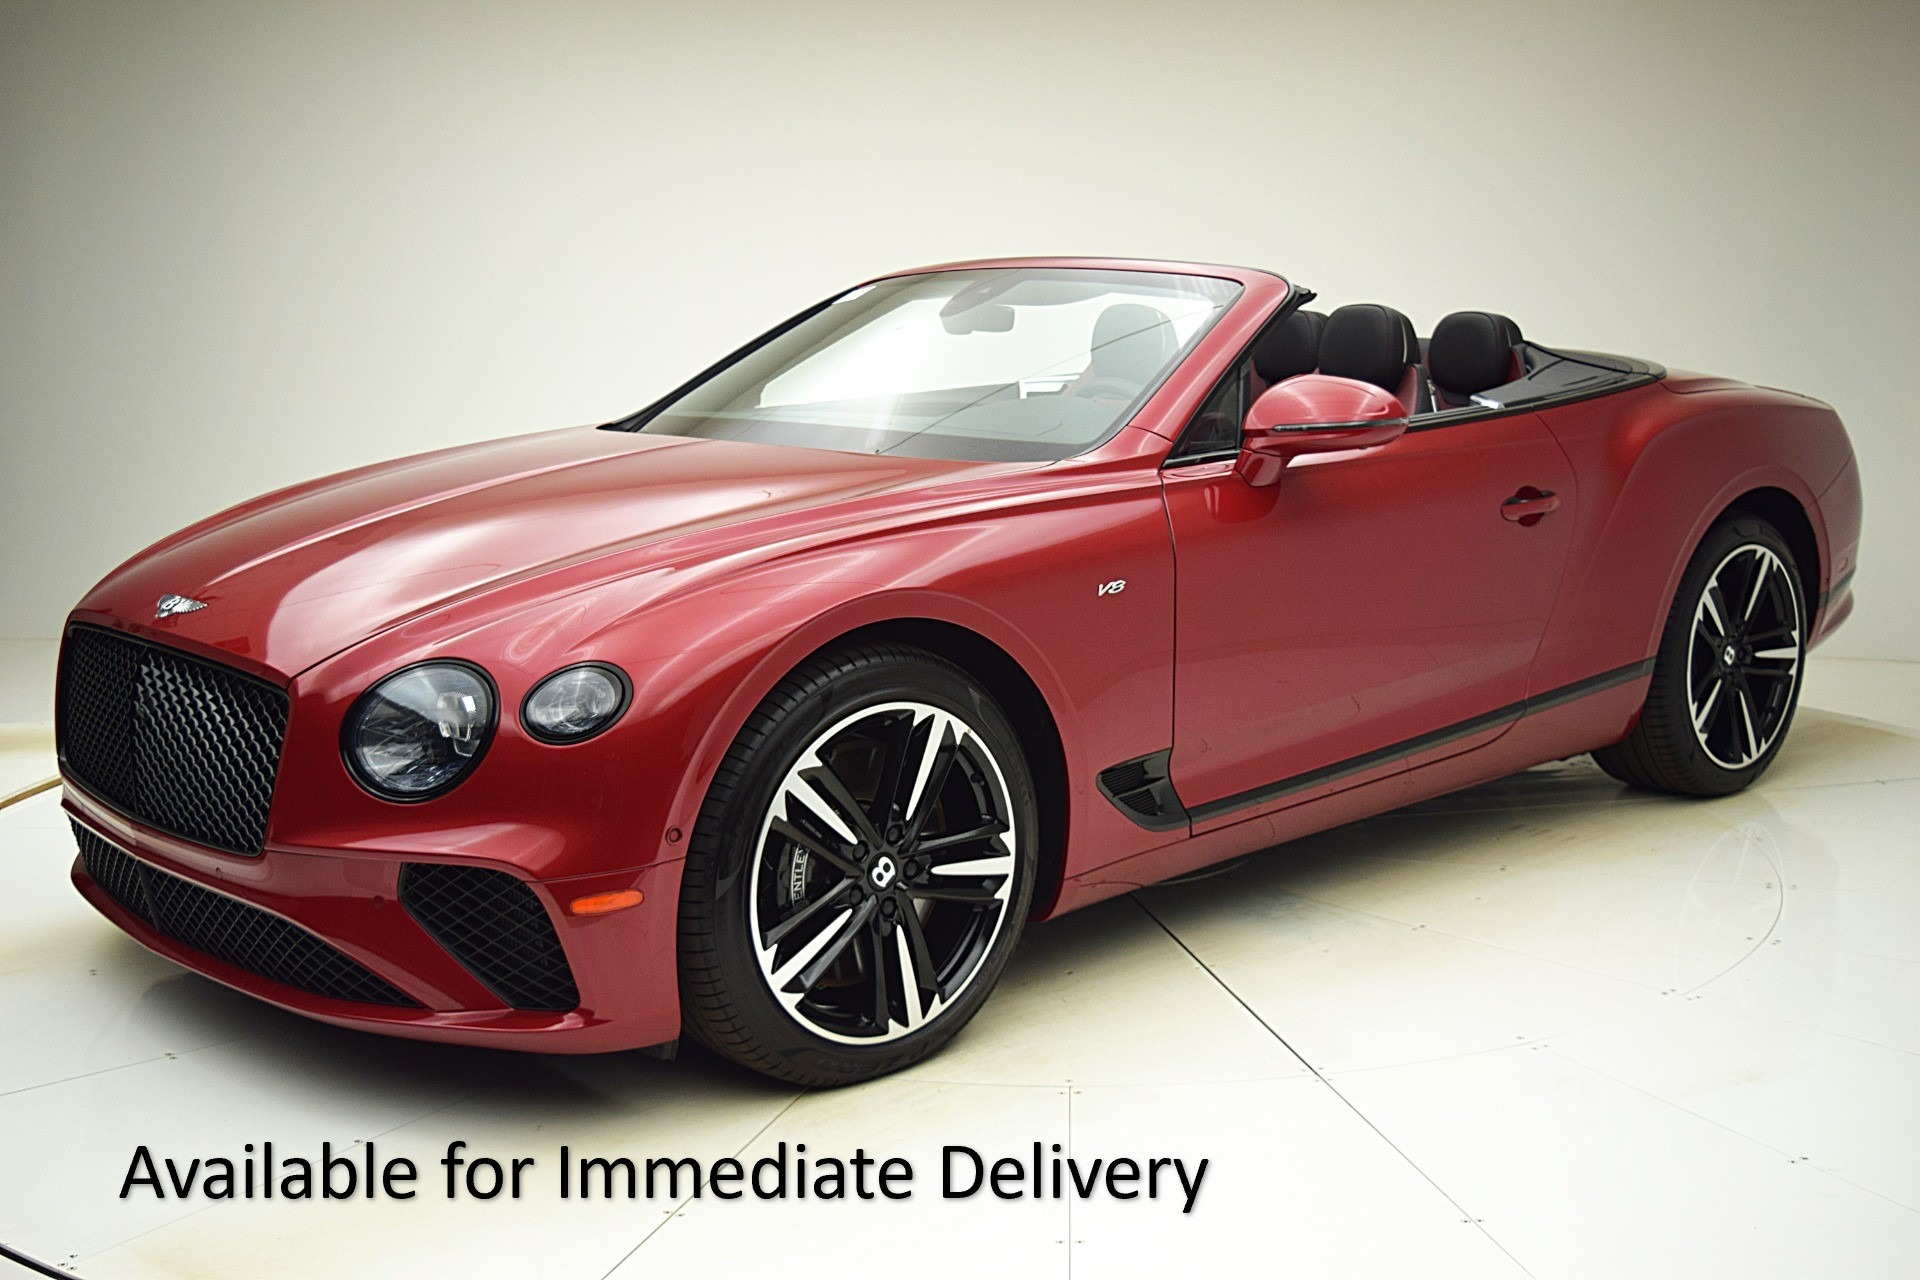 Used 2021 Bentley Continental GT V8 Convertible for sale $284,520 at Bentley Palmyra N.J. in Palmyra NJ 08065 2